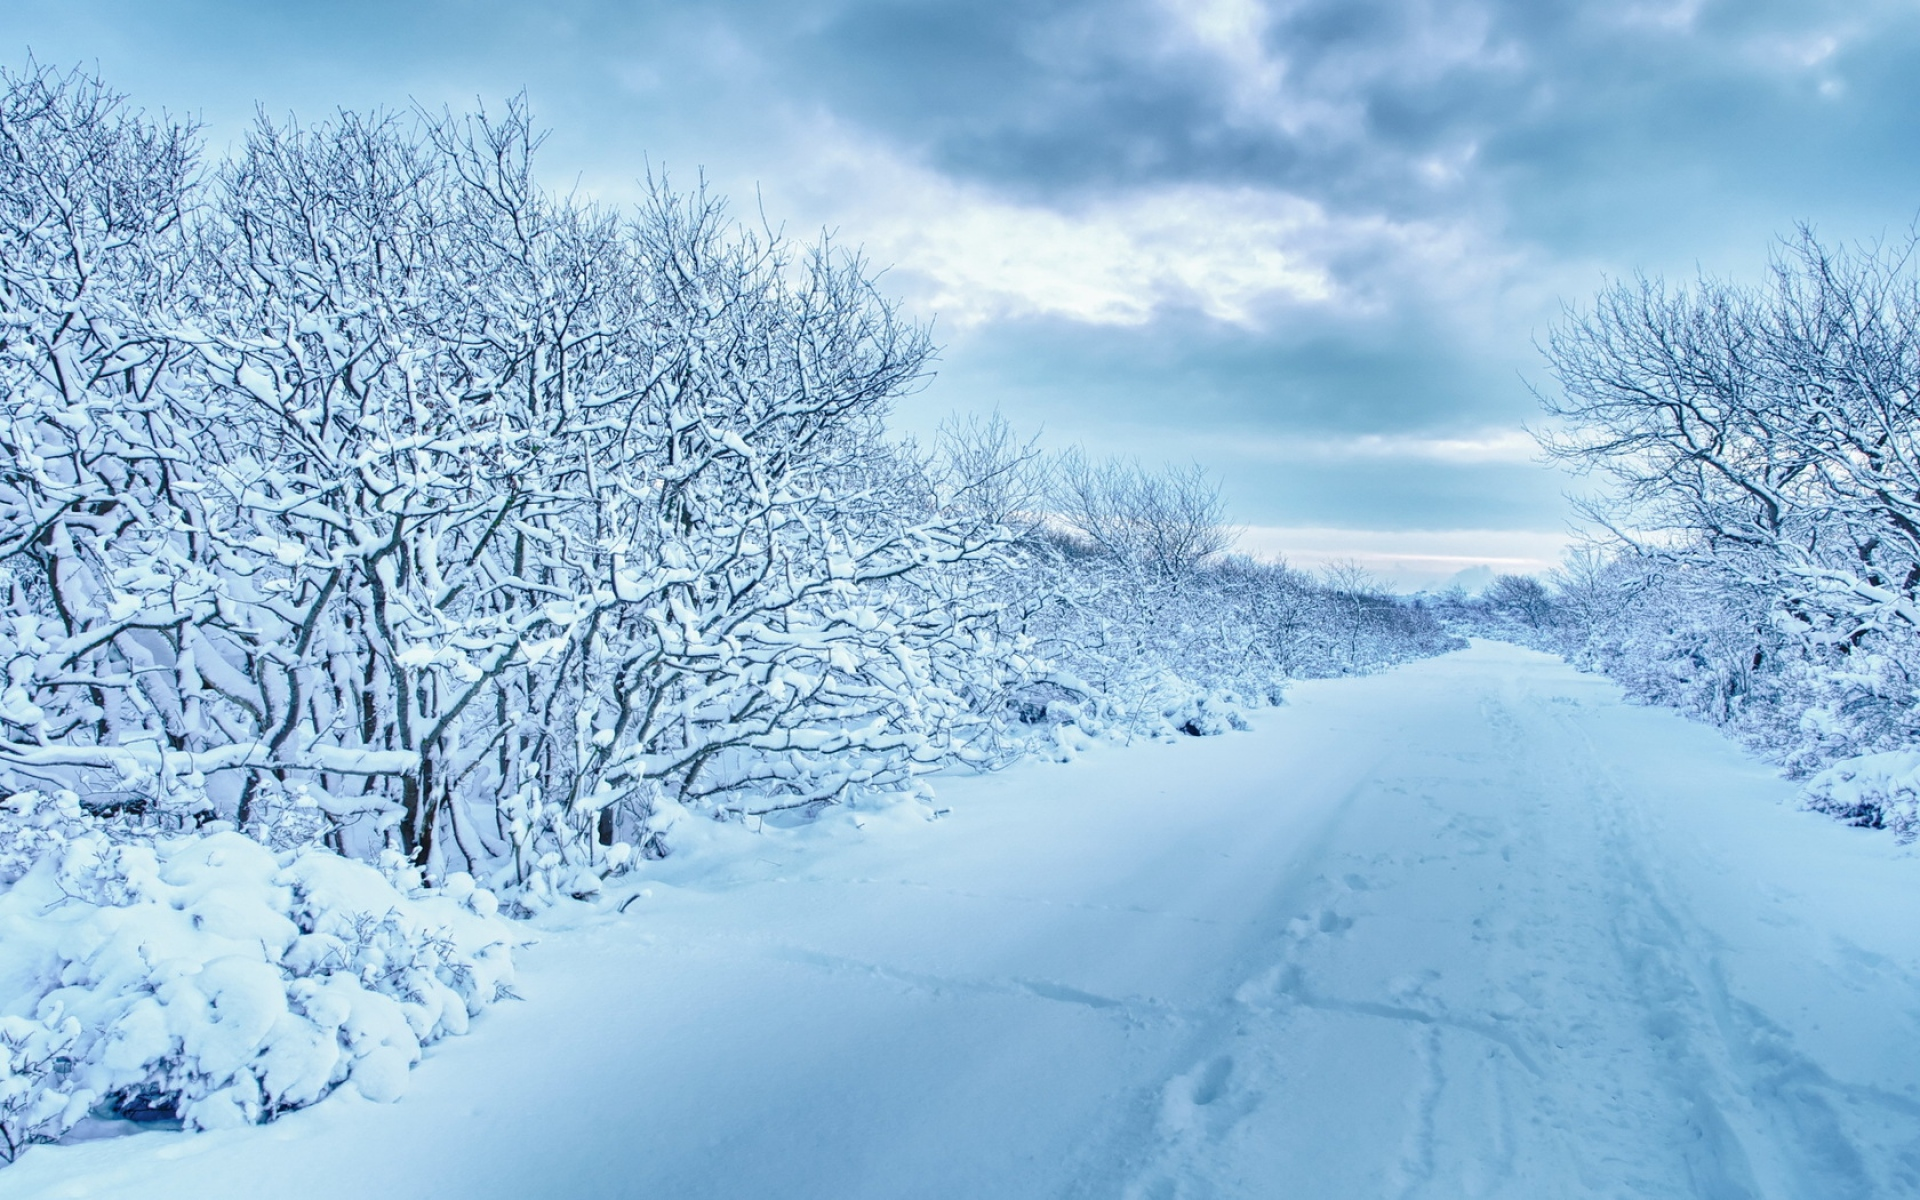 Snow Falling Video Wallpaper Snowy Trees Amp Walk Way Wallpapers Snowy Trees Amp Walk Way